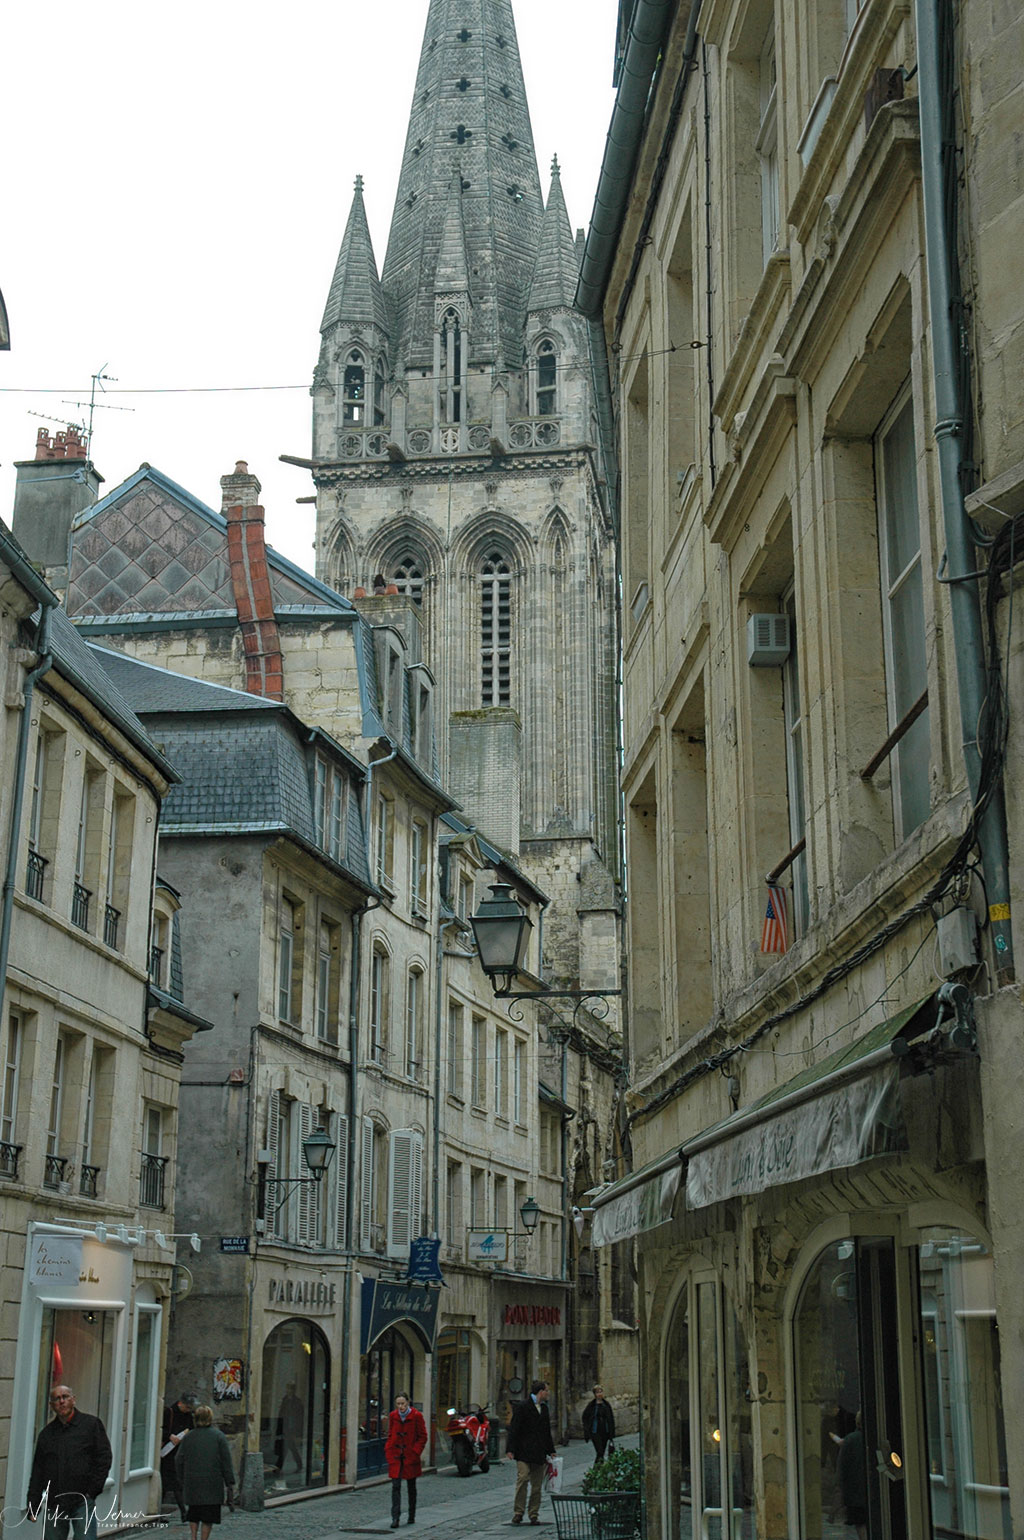 Today the Saint Pierre church can still be seen from far within Caen